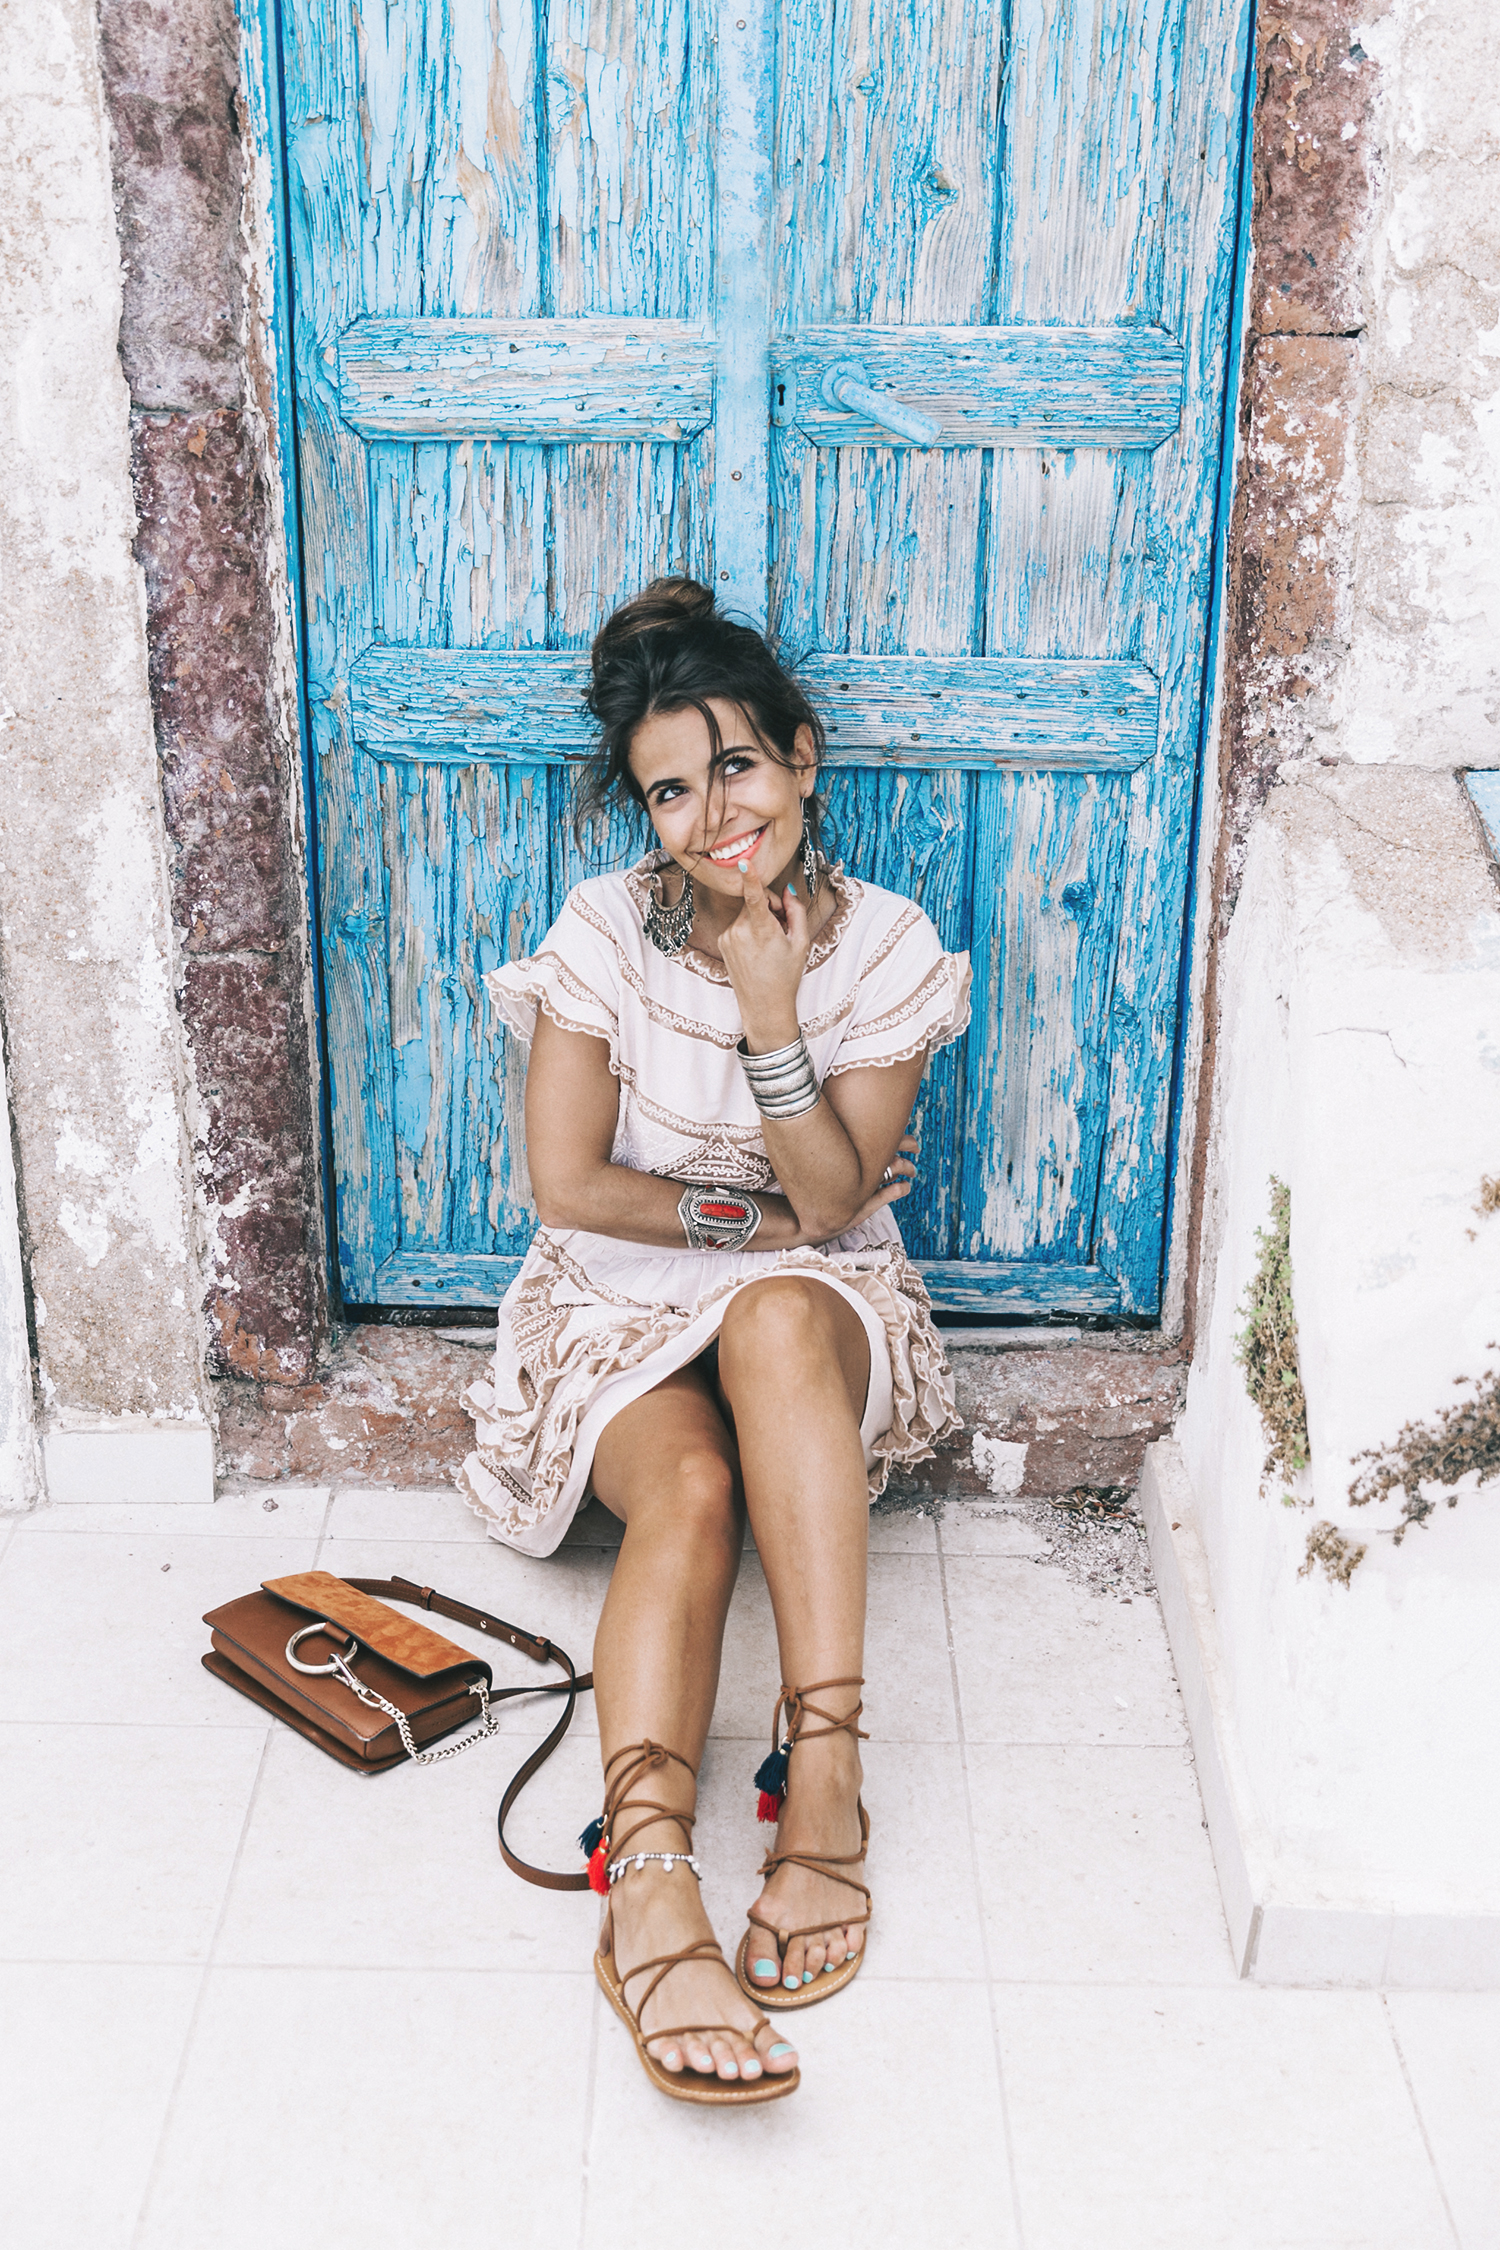 Chloe_Bag-Faye_Bag-For_Love_And_Lemons-Dress-Topknot-Soludos_Escapes-Soludos_Espadrilles-Summer-Santorini-Collage_Vintage-86